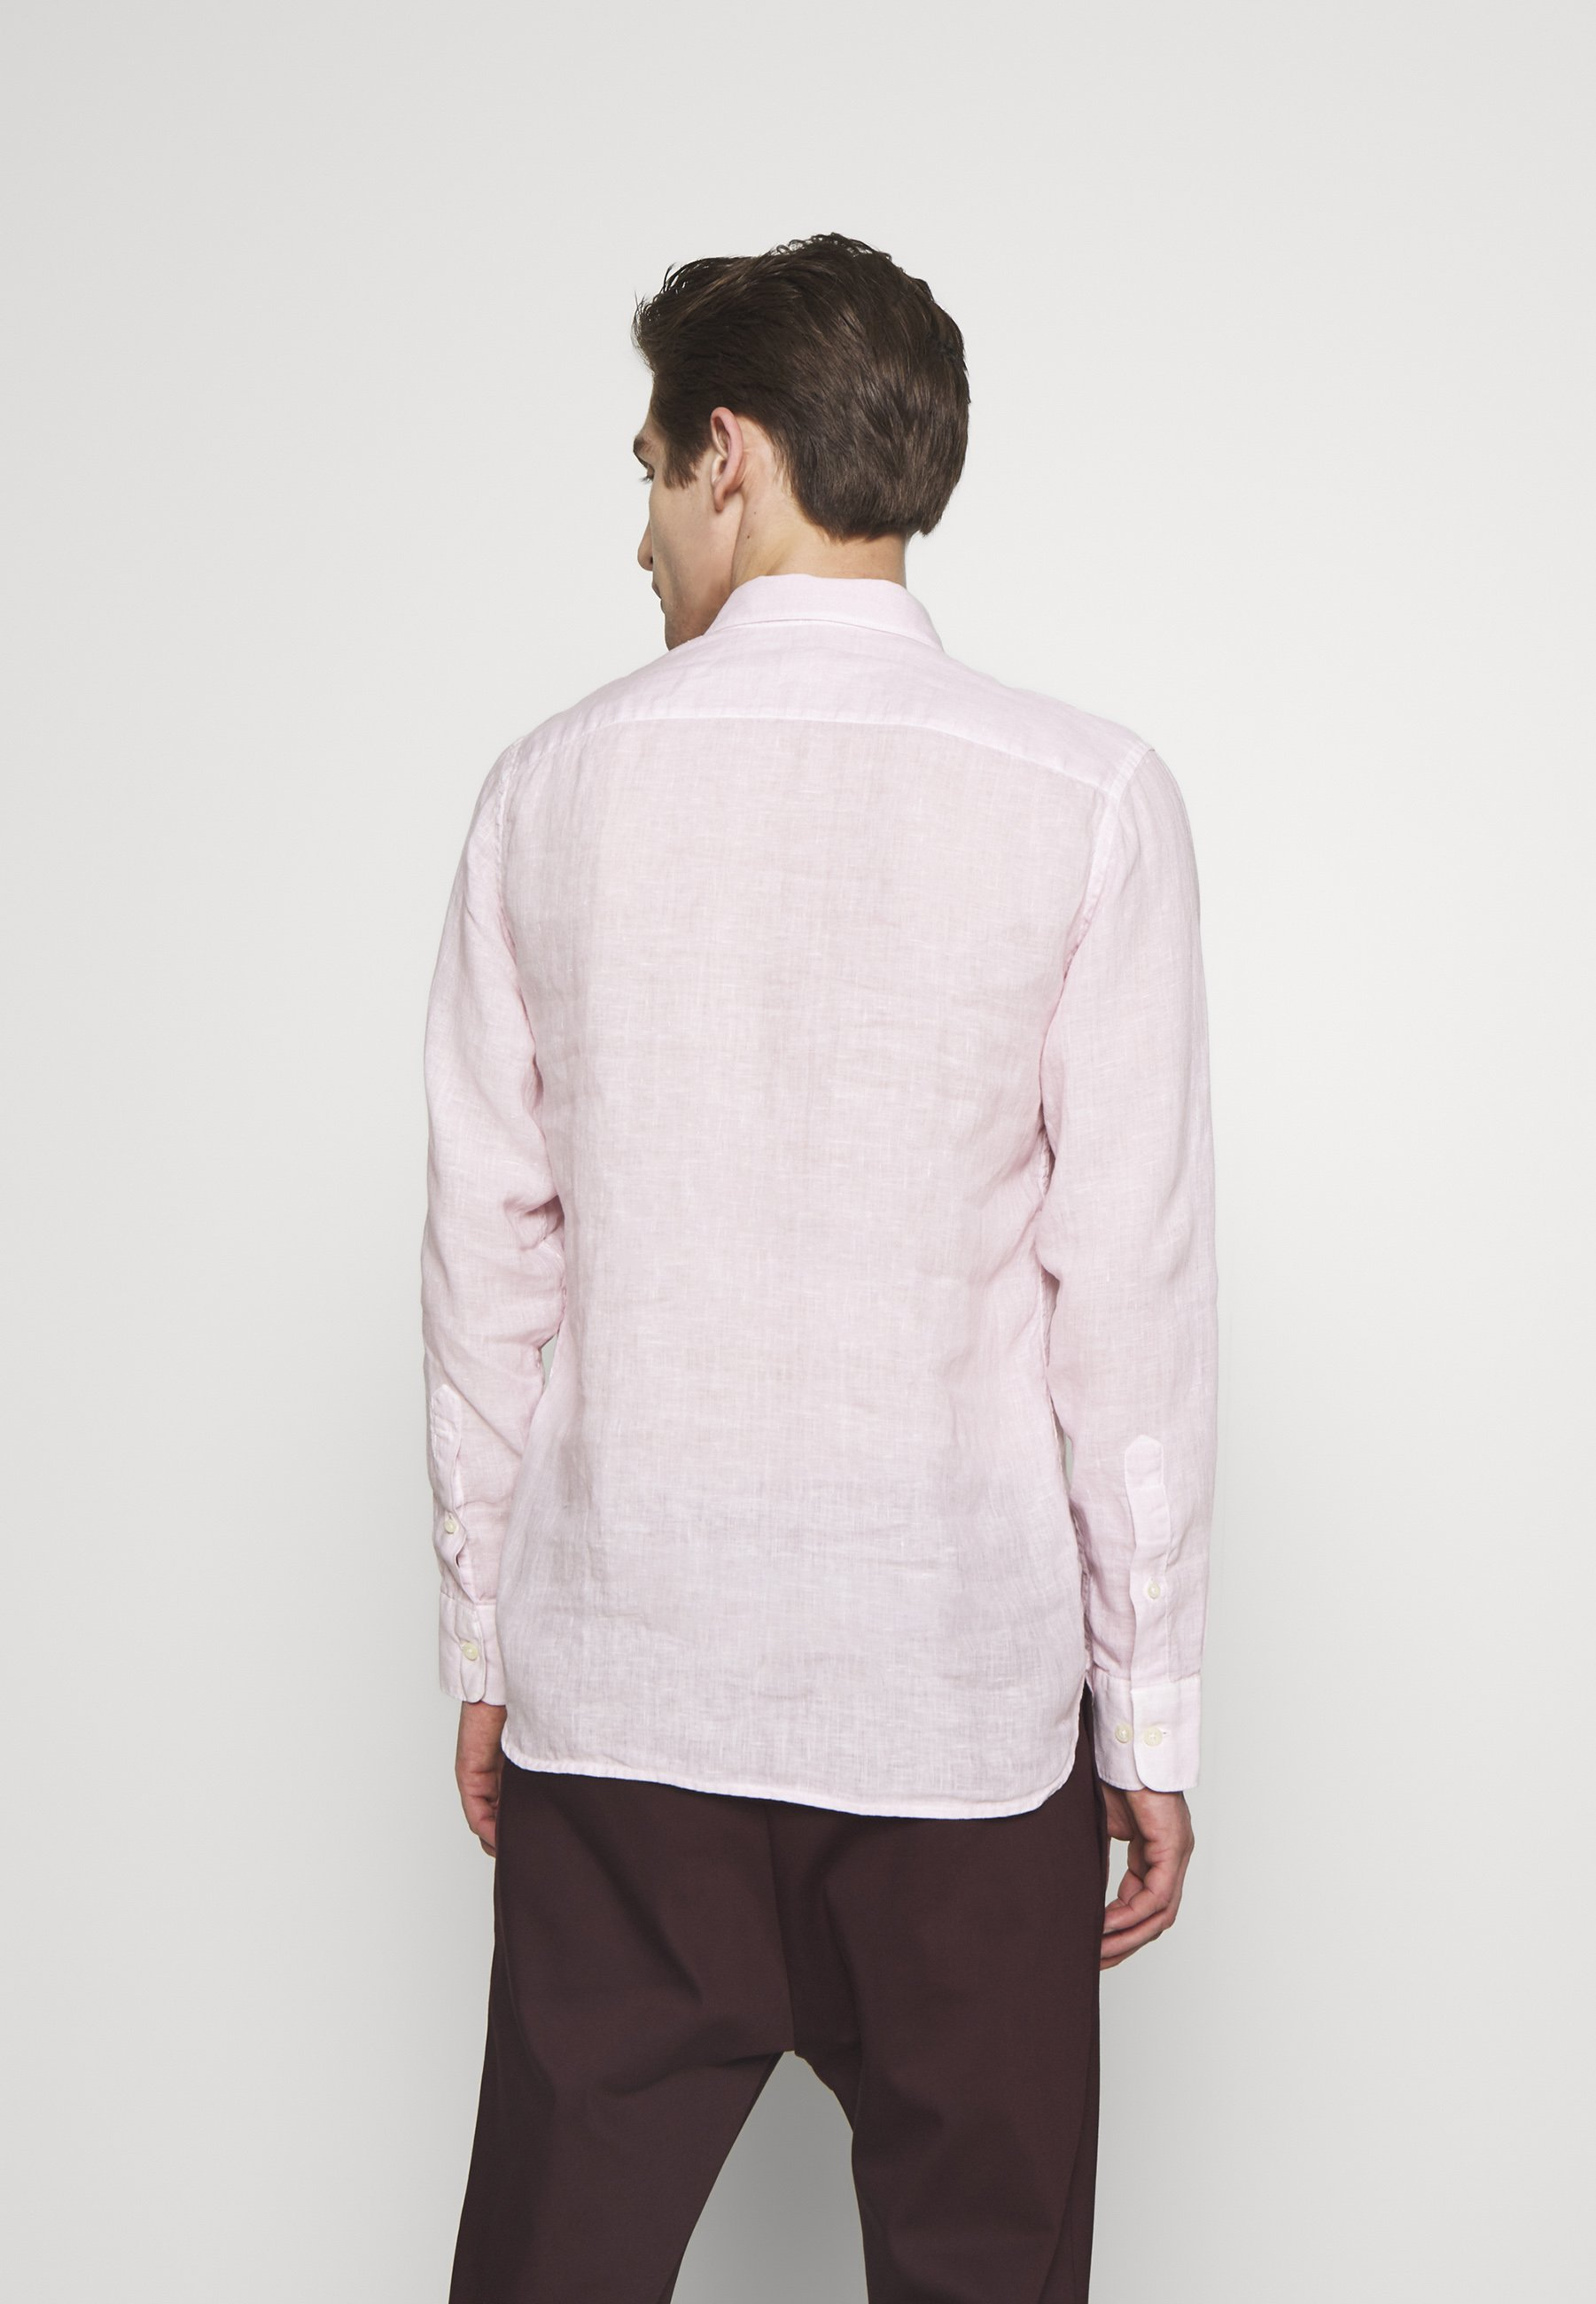 120% Lino Chemise - Pink Soft Fade